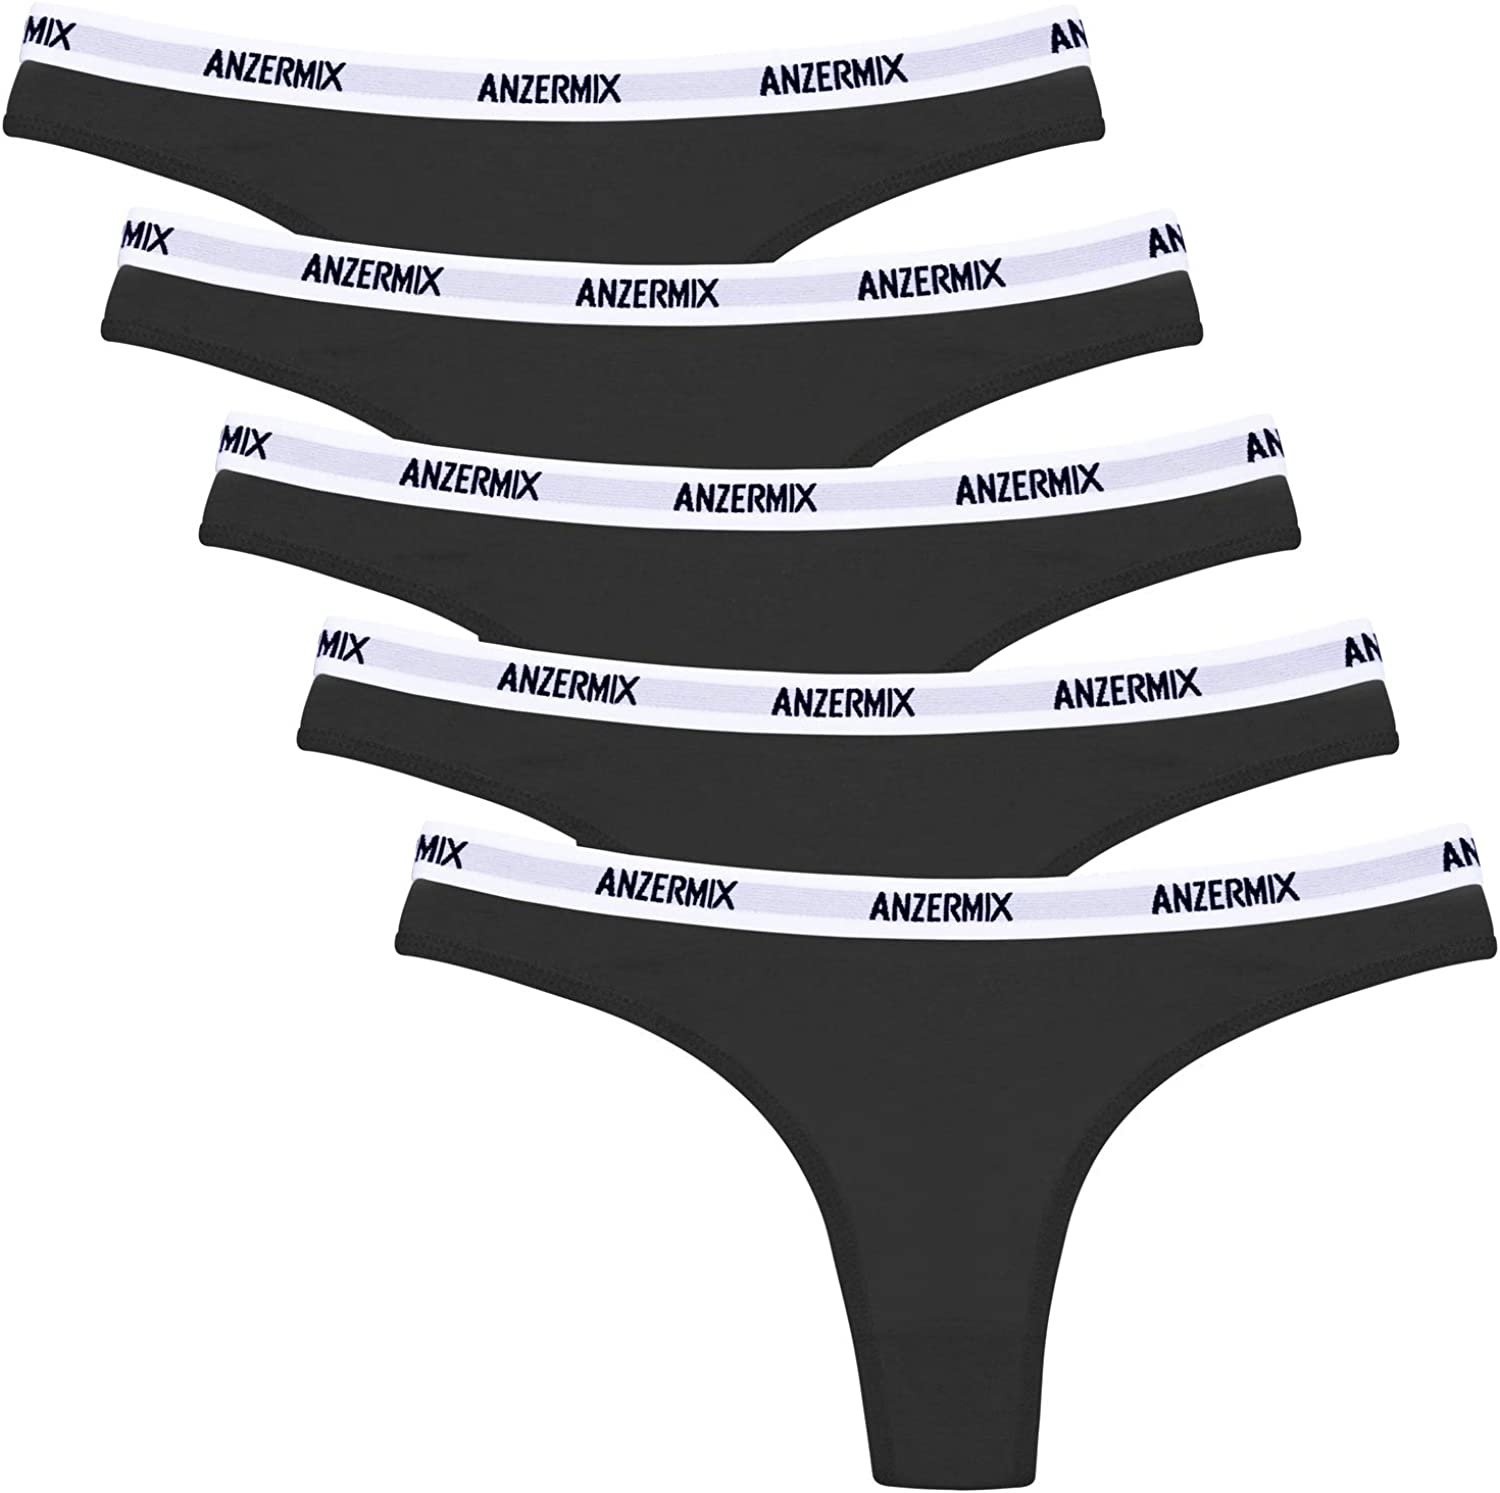 Anzermix Womens Breathable Cotton Thongs Panties Pack of 6